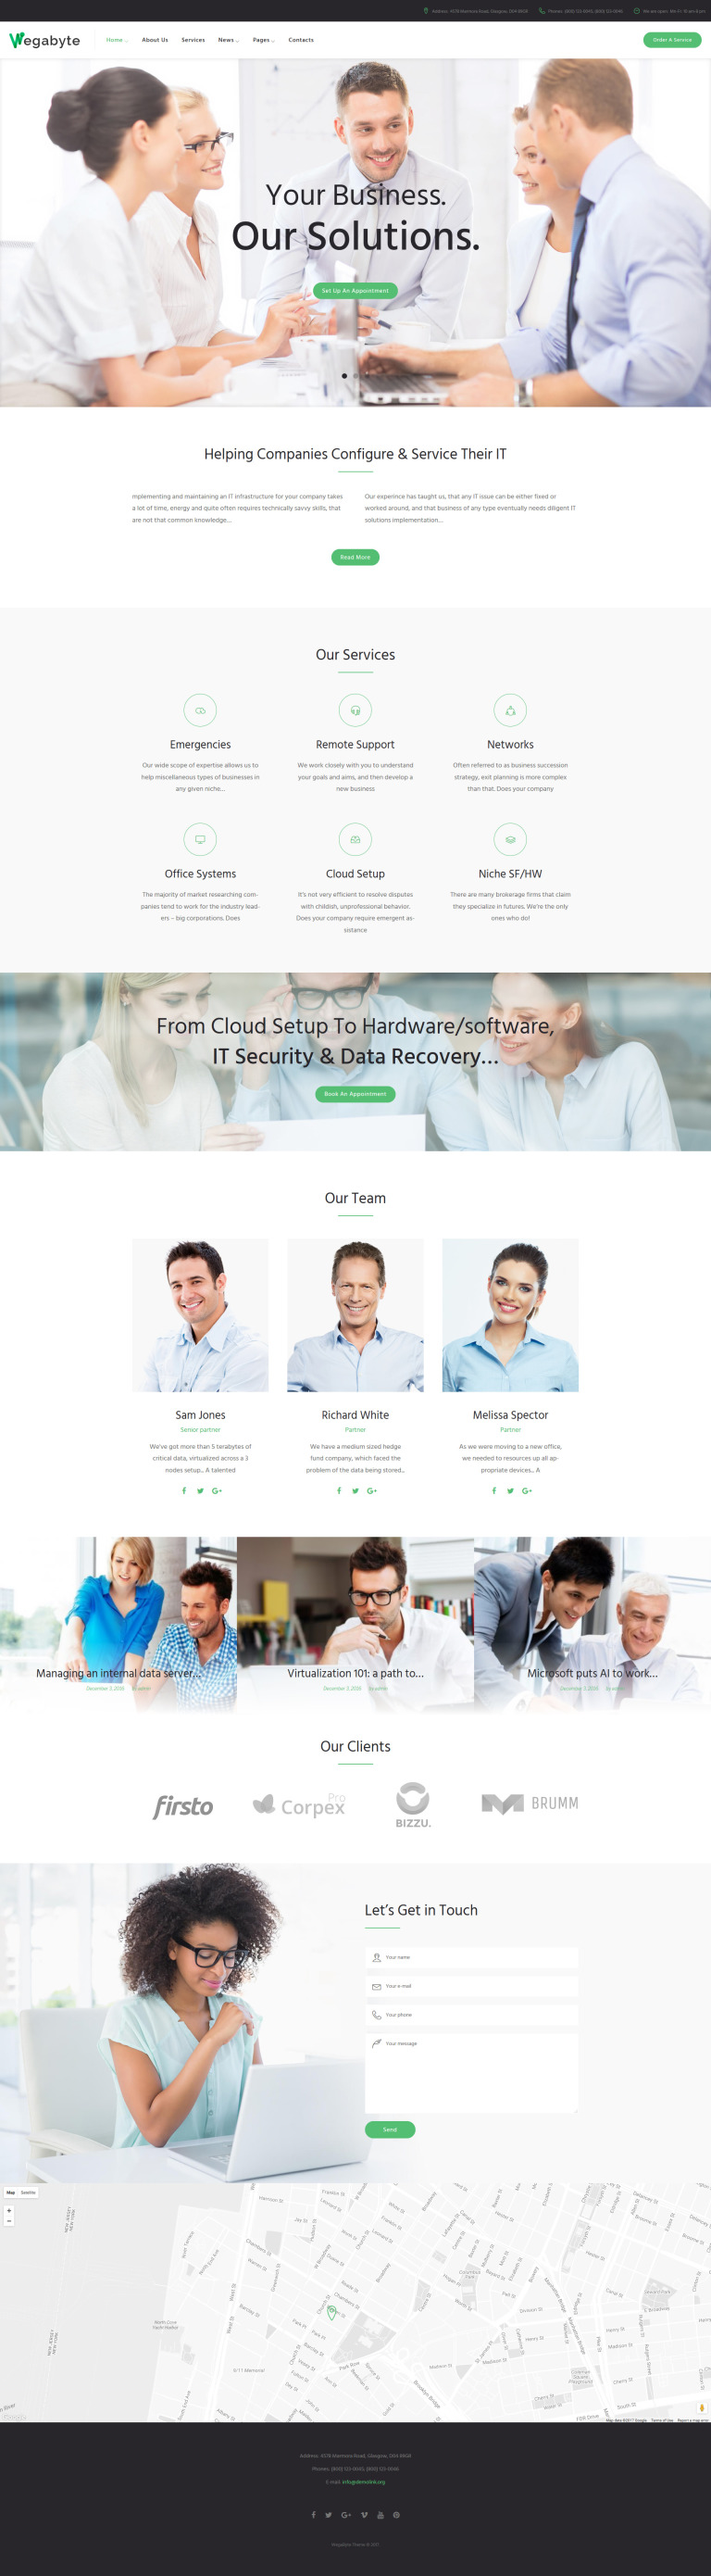 WegaByte - IT Consulting Firm WordPress Theme New Screenshots BIG